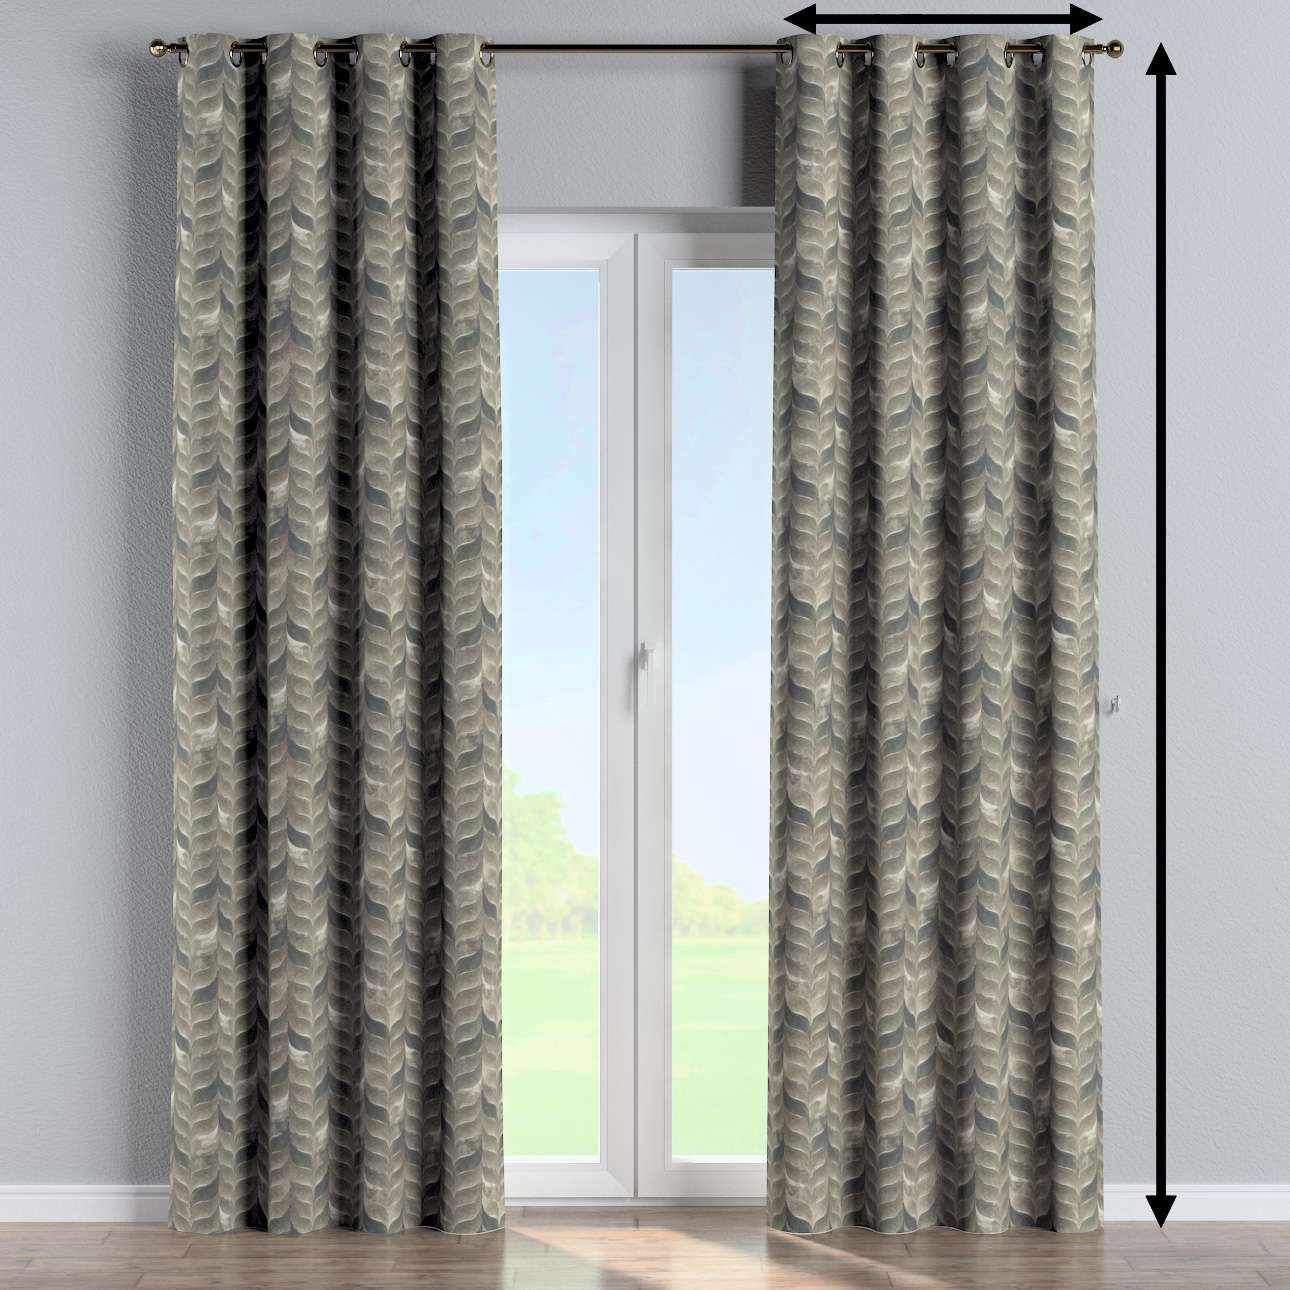 Eyelet curtain in collection Abigail, fabric: 143-12